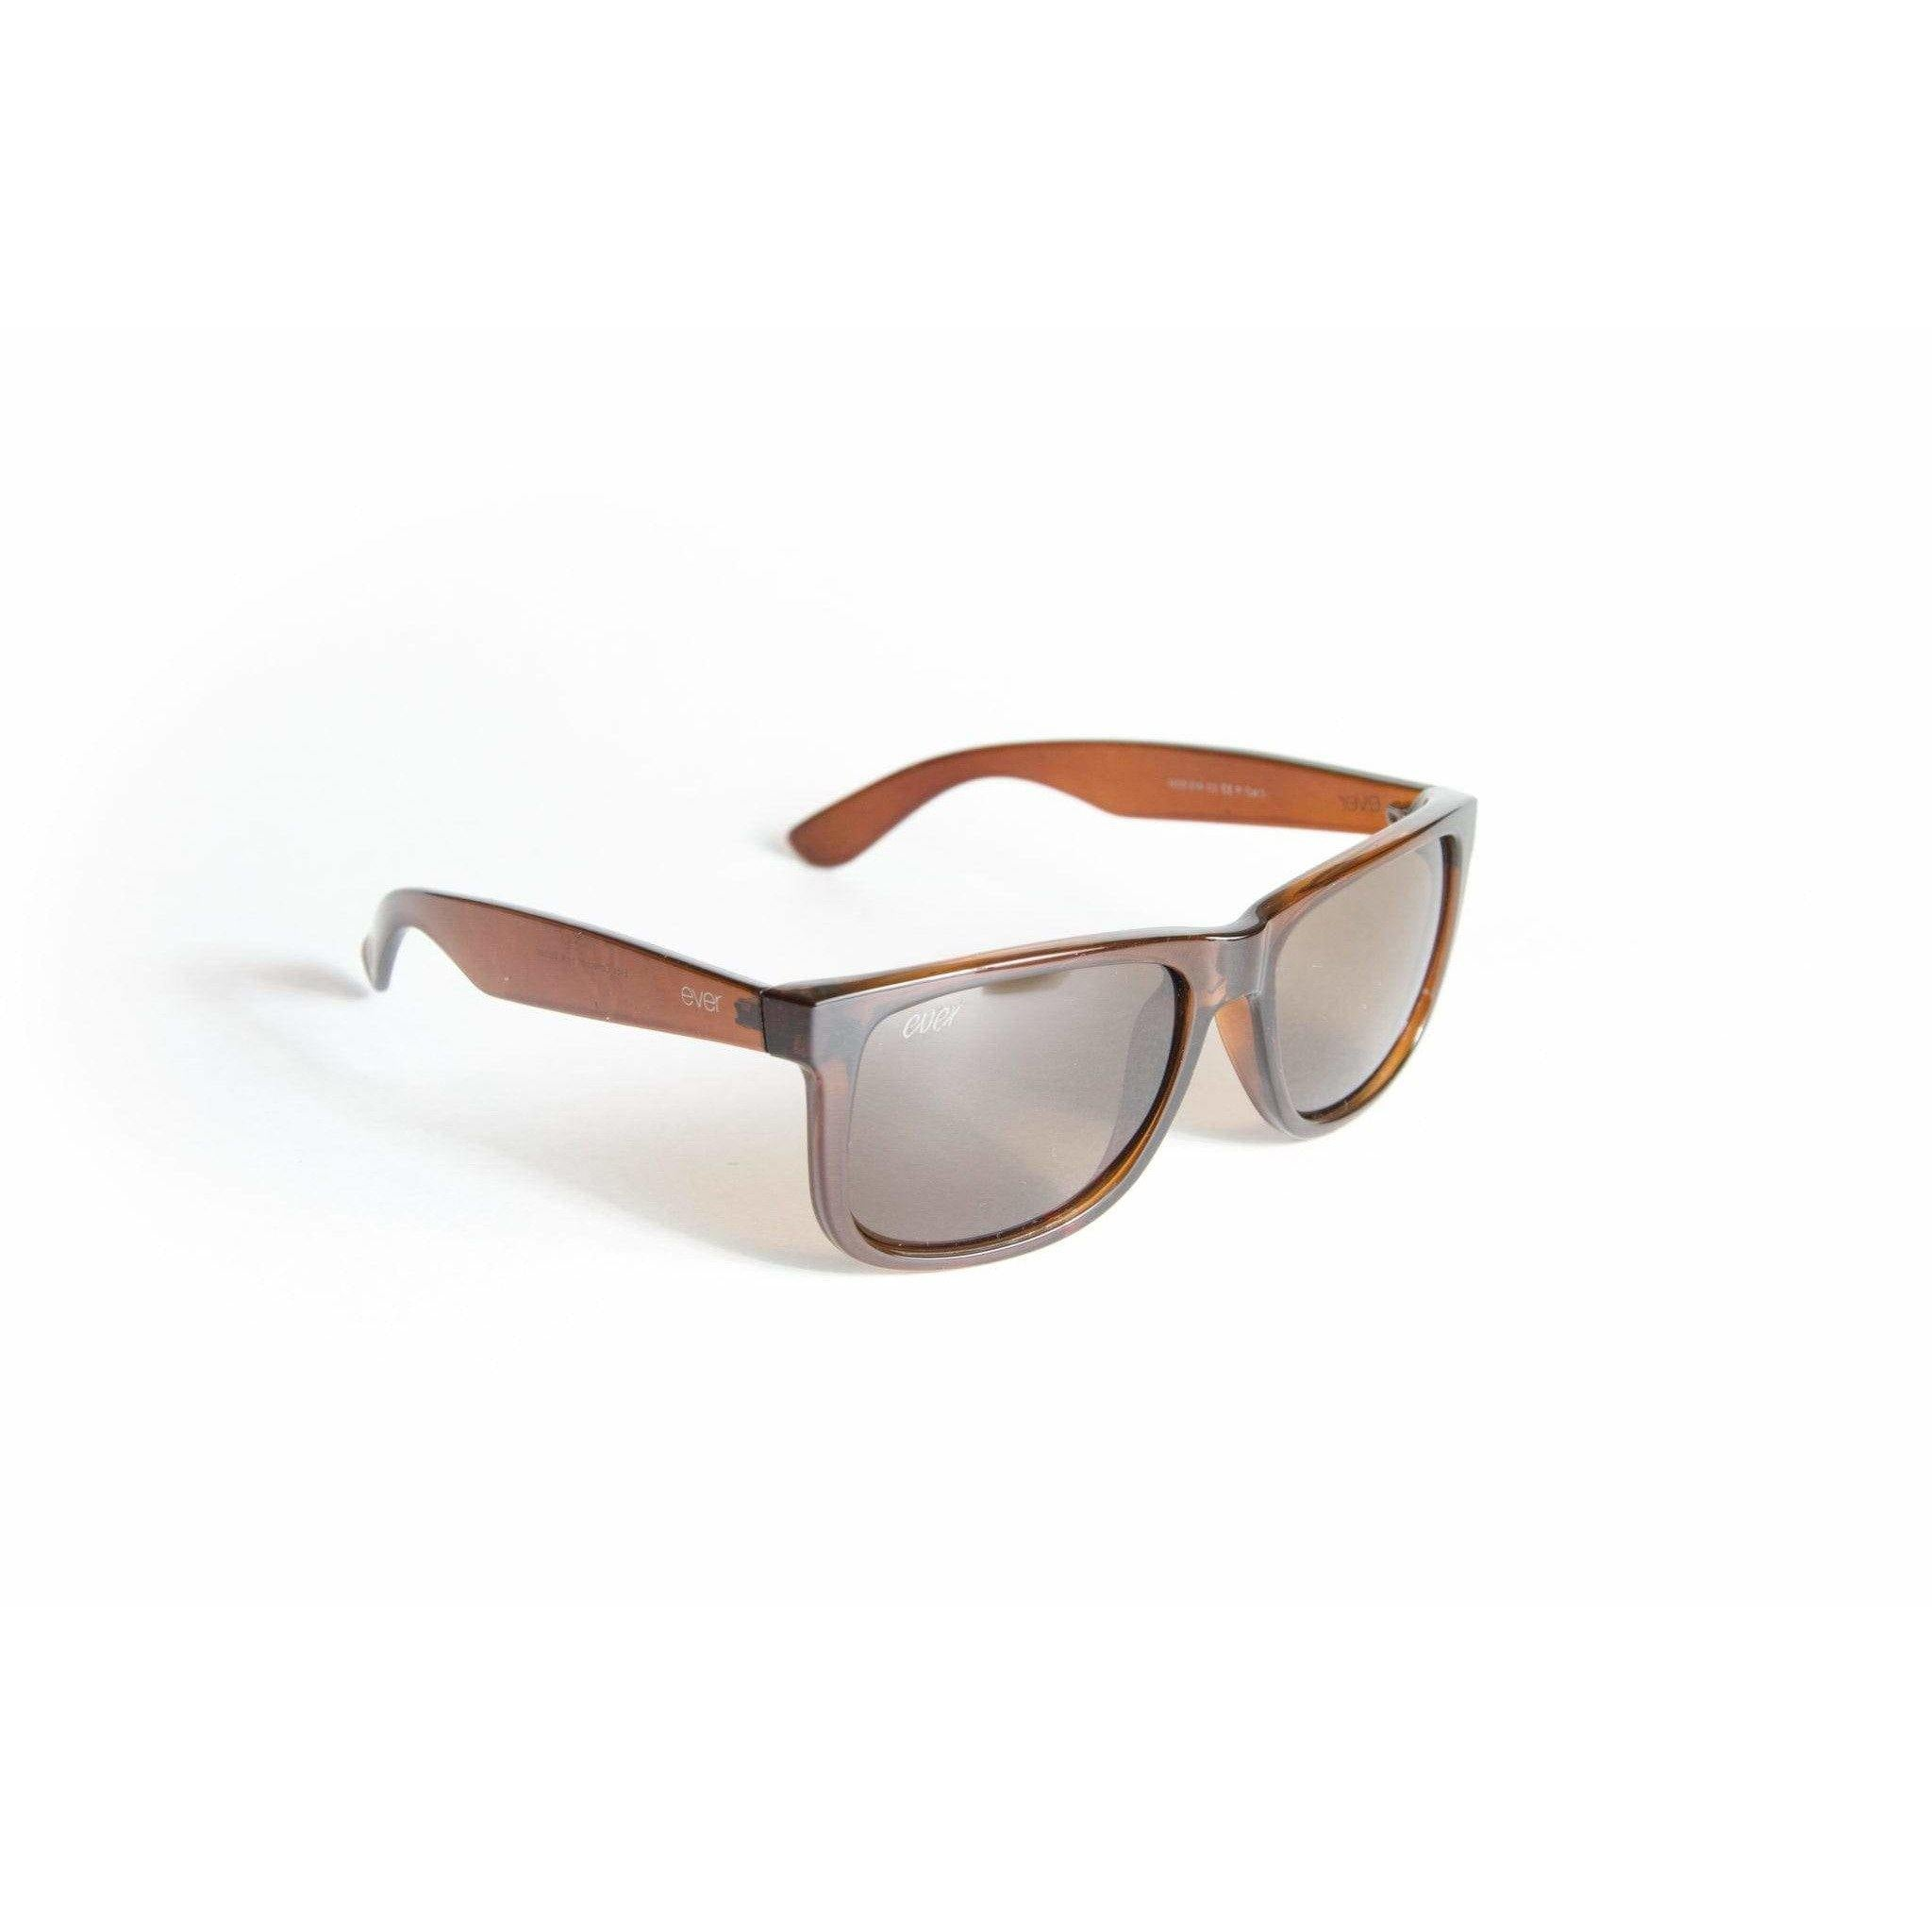 "Sports Sunglasses Designer Sunglasses Model ""Johnny Blaze"" By: The Ever Collection"